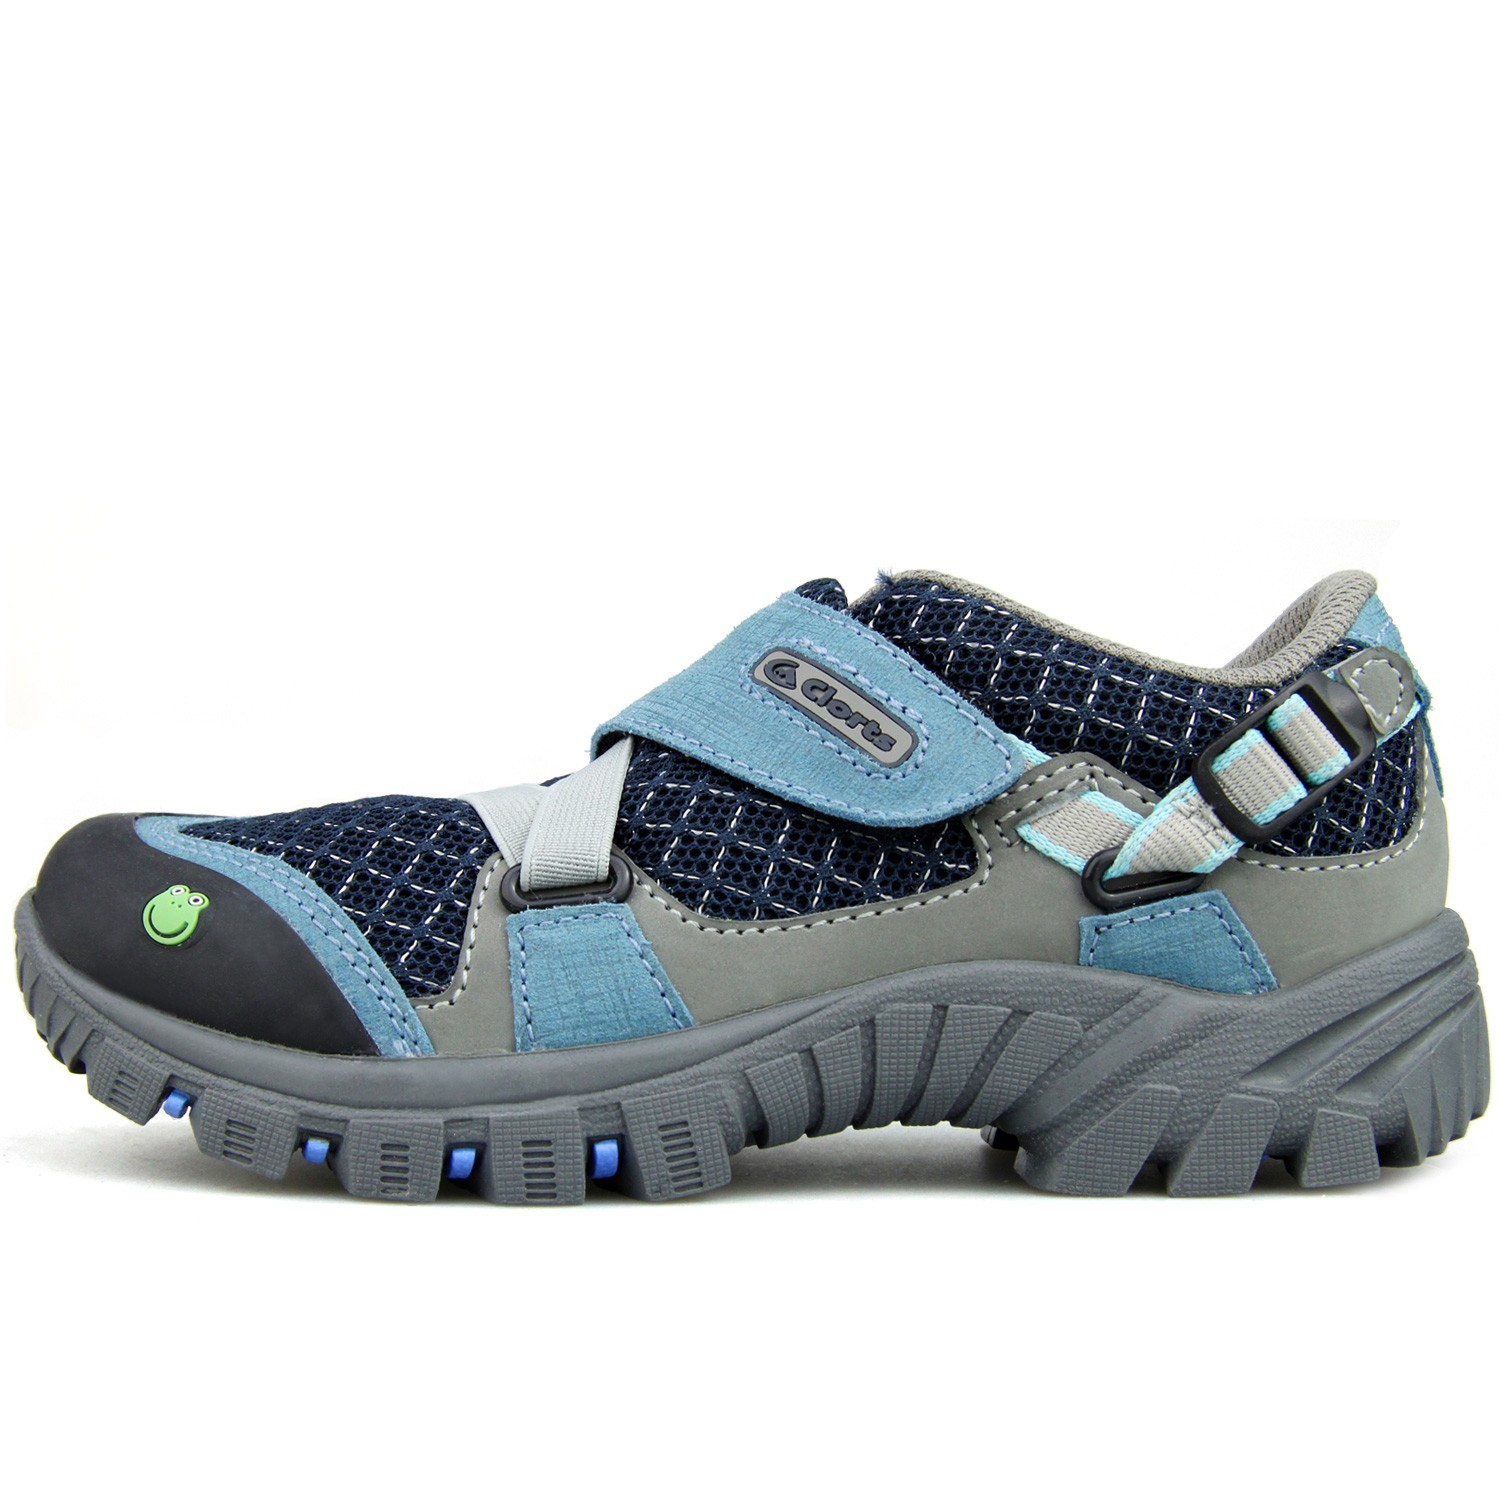 Baby Boy Sandals Slippers Manufacturers, Baby Boy Sandals Slippers Factory, Supply Baby Boy Sandals Slippers